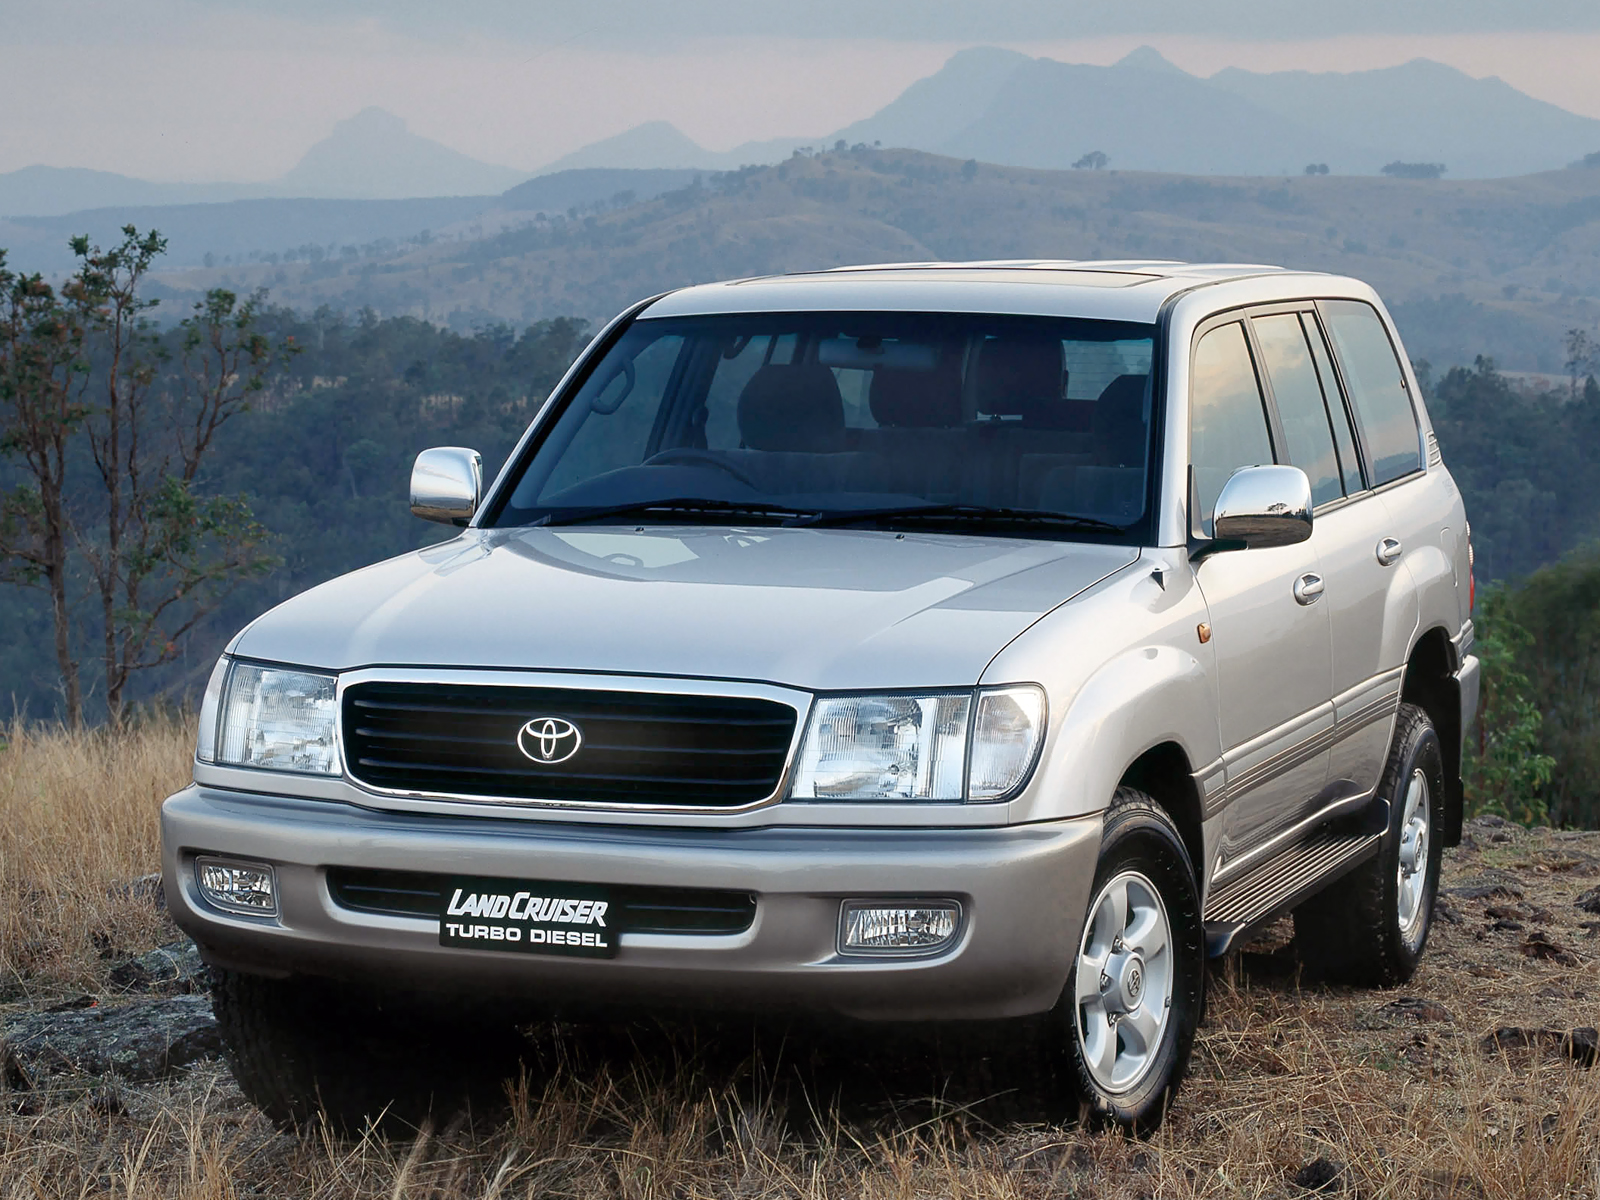 2002 Toyota Land Cruiser 100 Suv 5-door